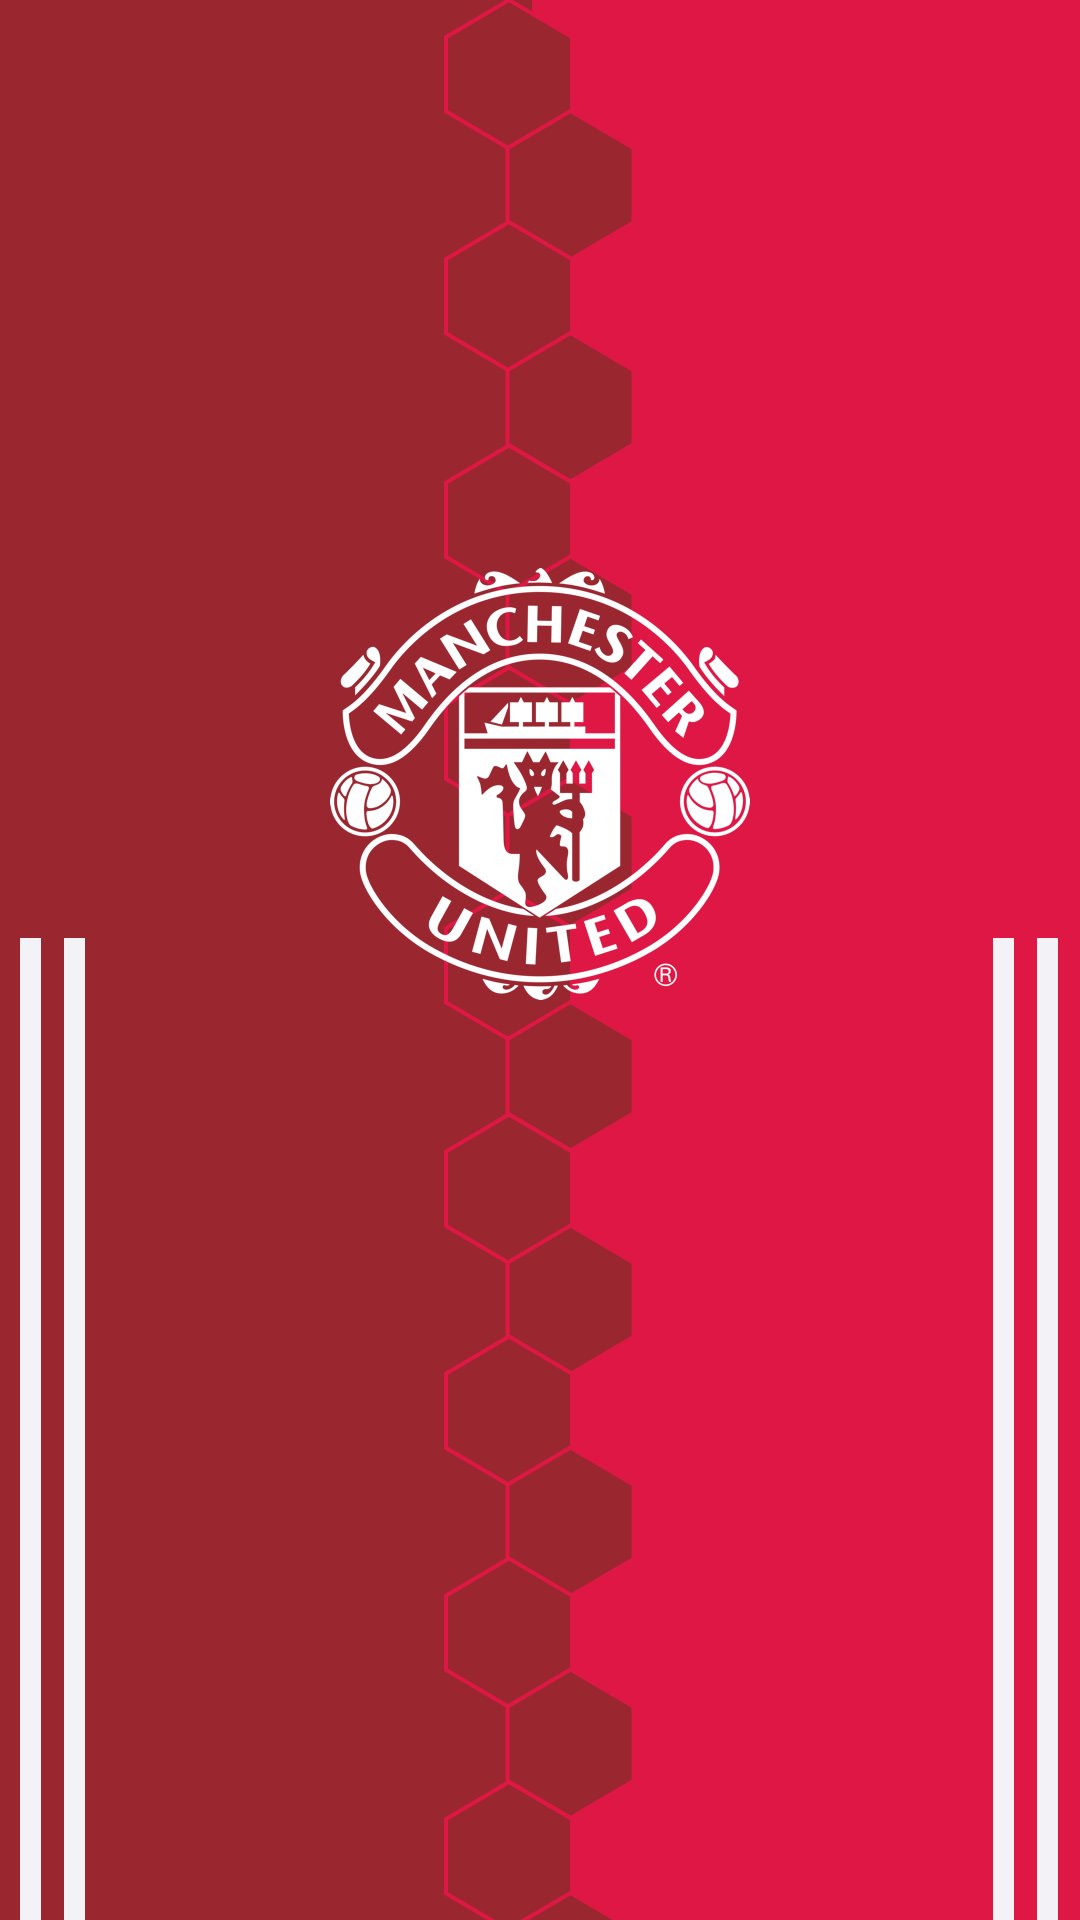 Manchester United Iphone Wallpaper Cute Wallpaper With Iphone Wallpaper Manchester United Jurnal Android Wallpaper Ponsel Sepak Bola Olahraga